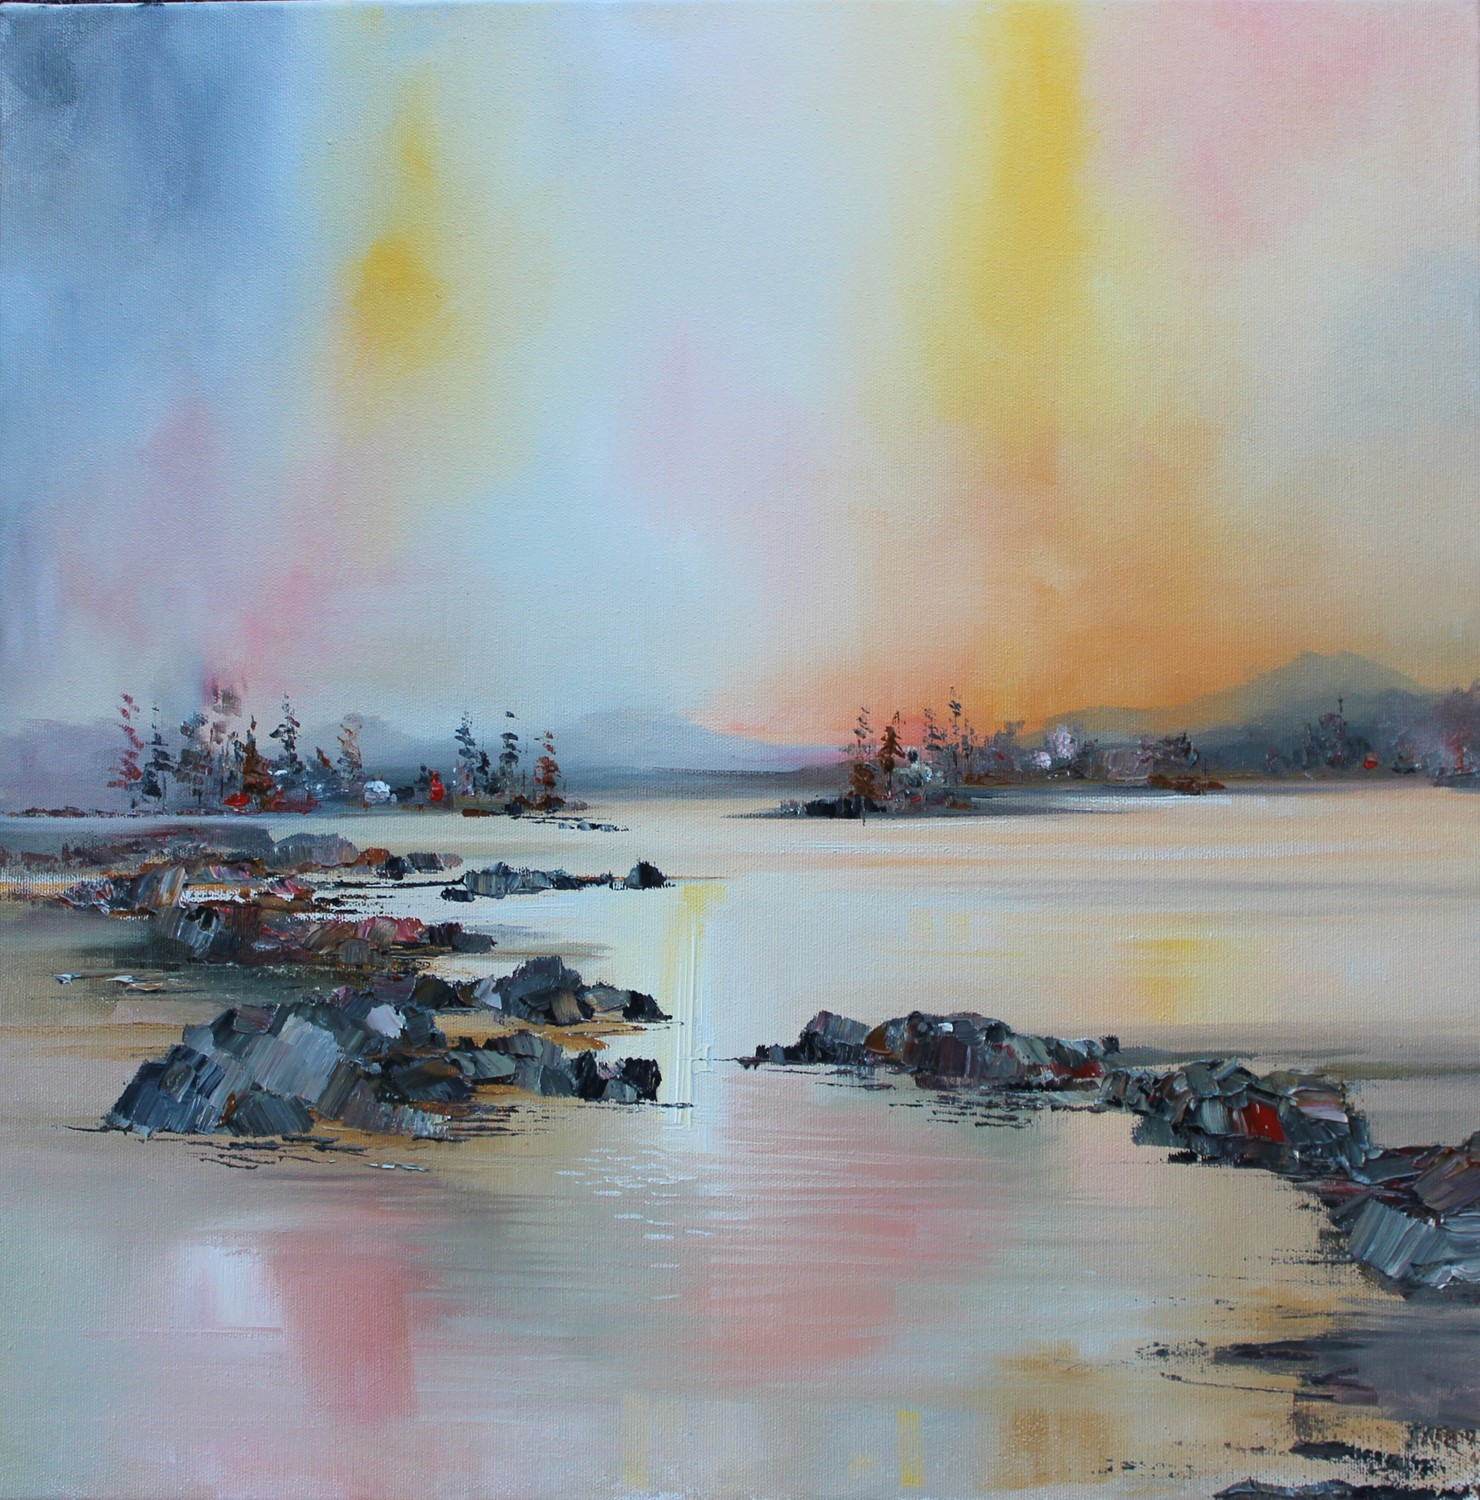 'Still moment by the Loch' by artist Rosanne Barr